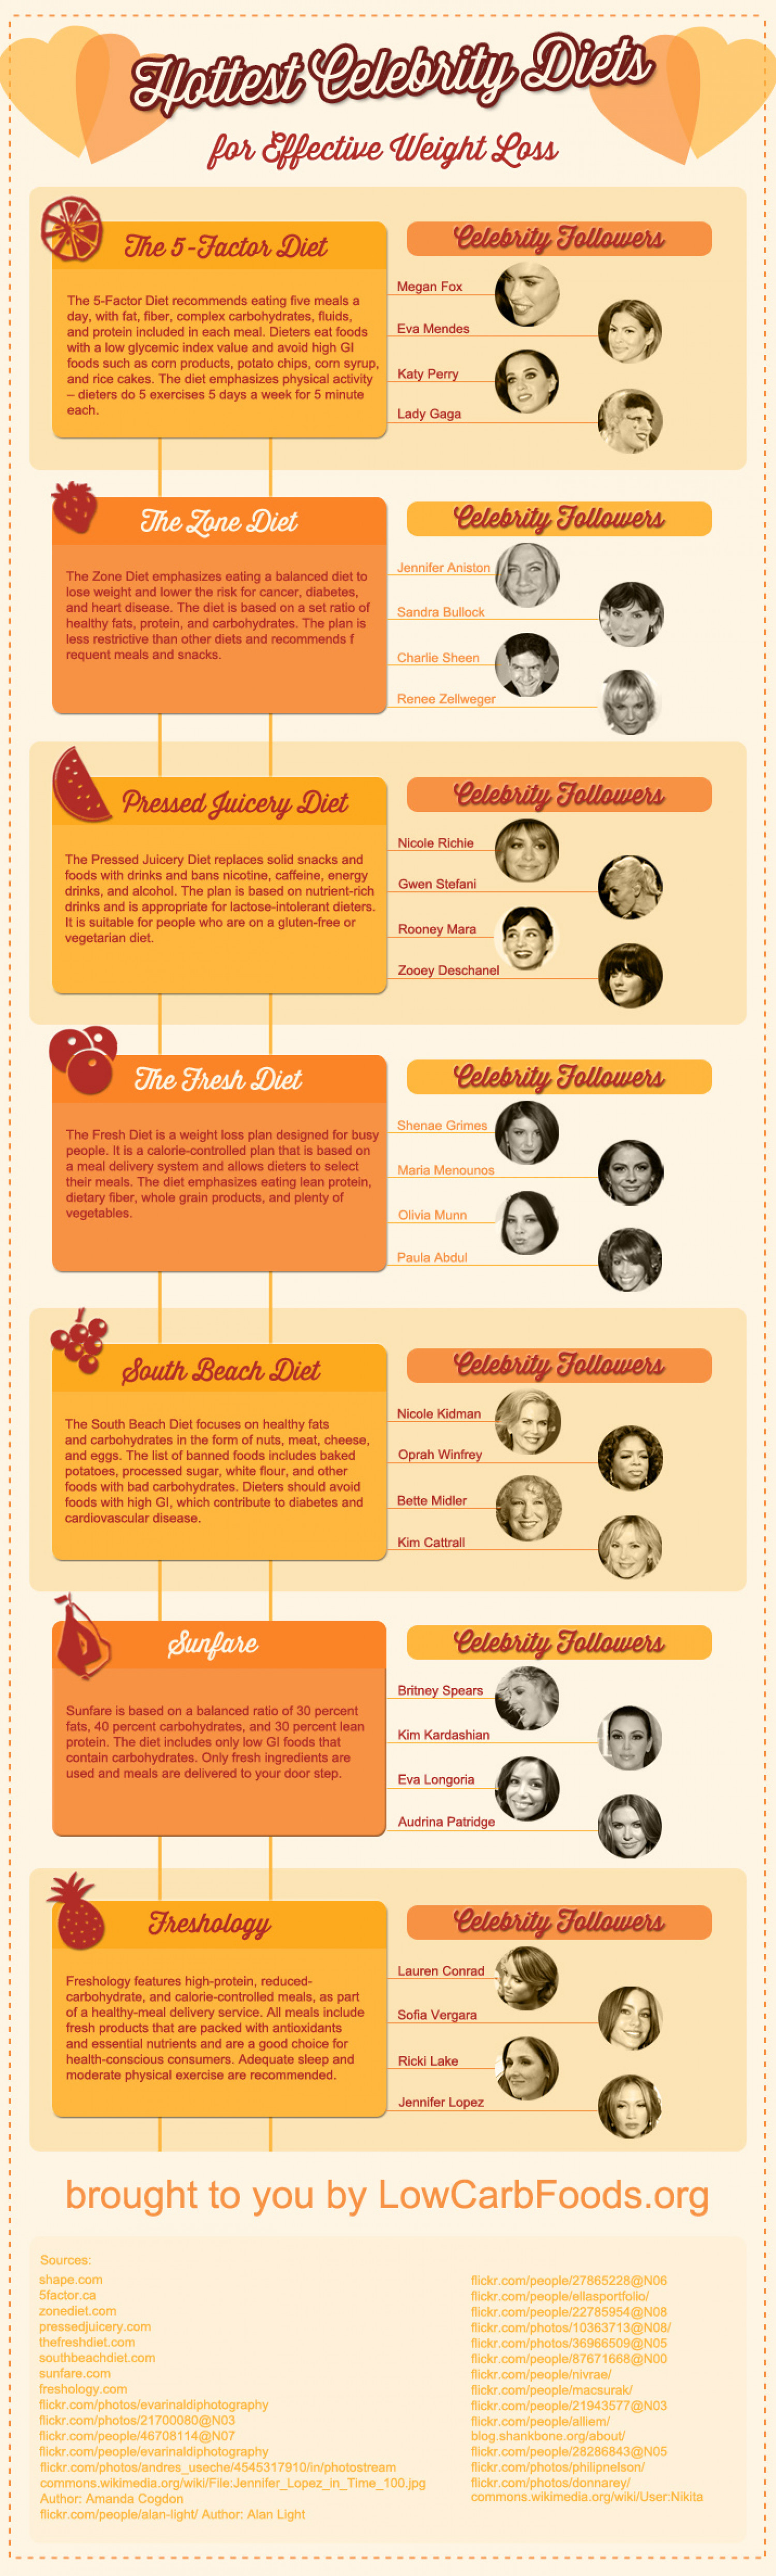 Hottest Celebrity Diets  Infographic